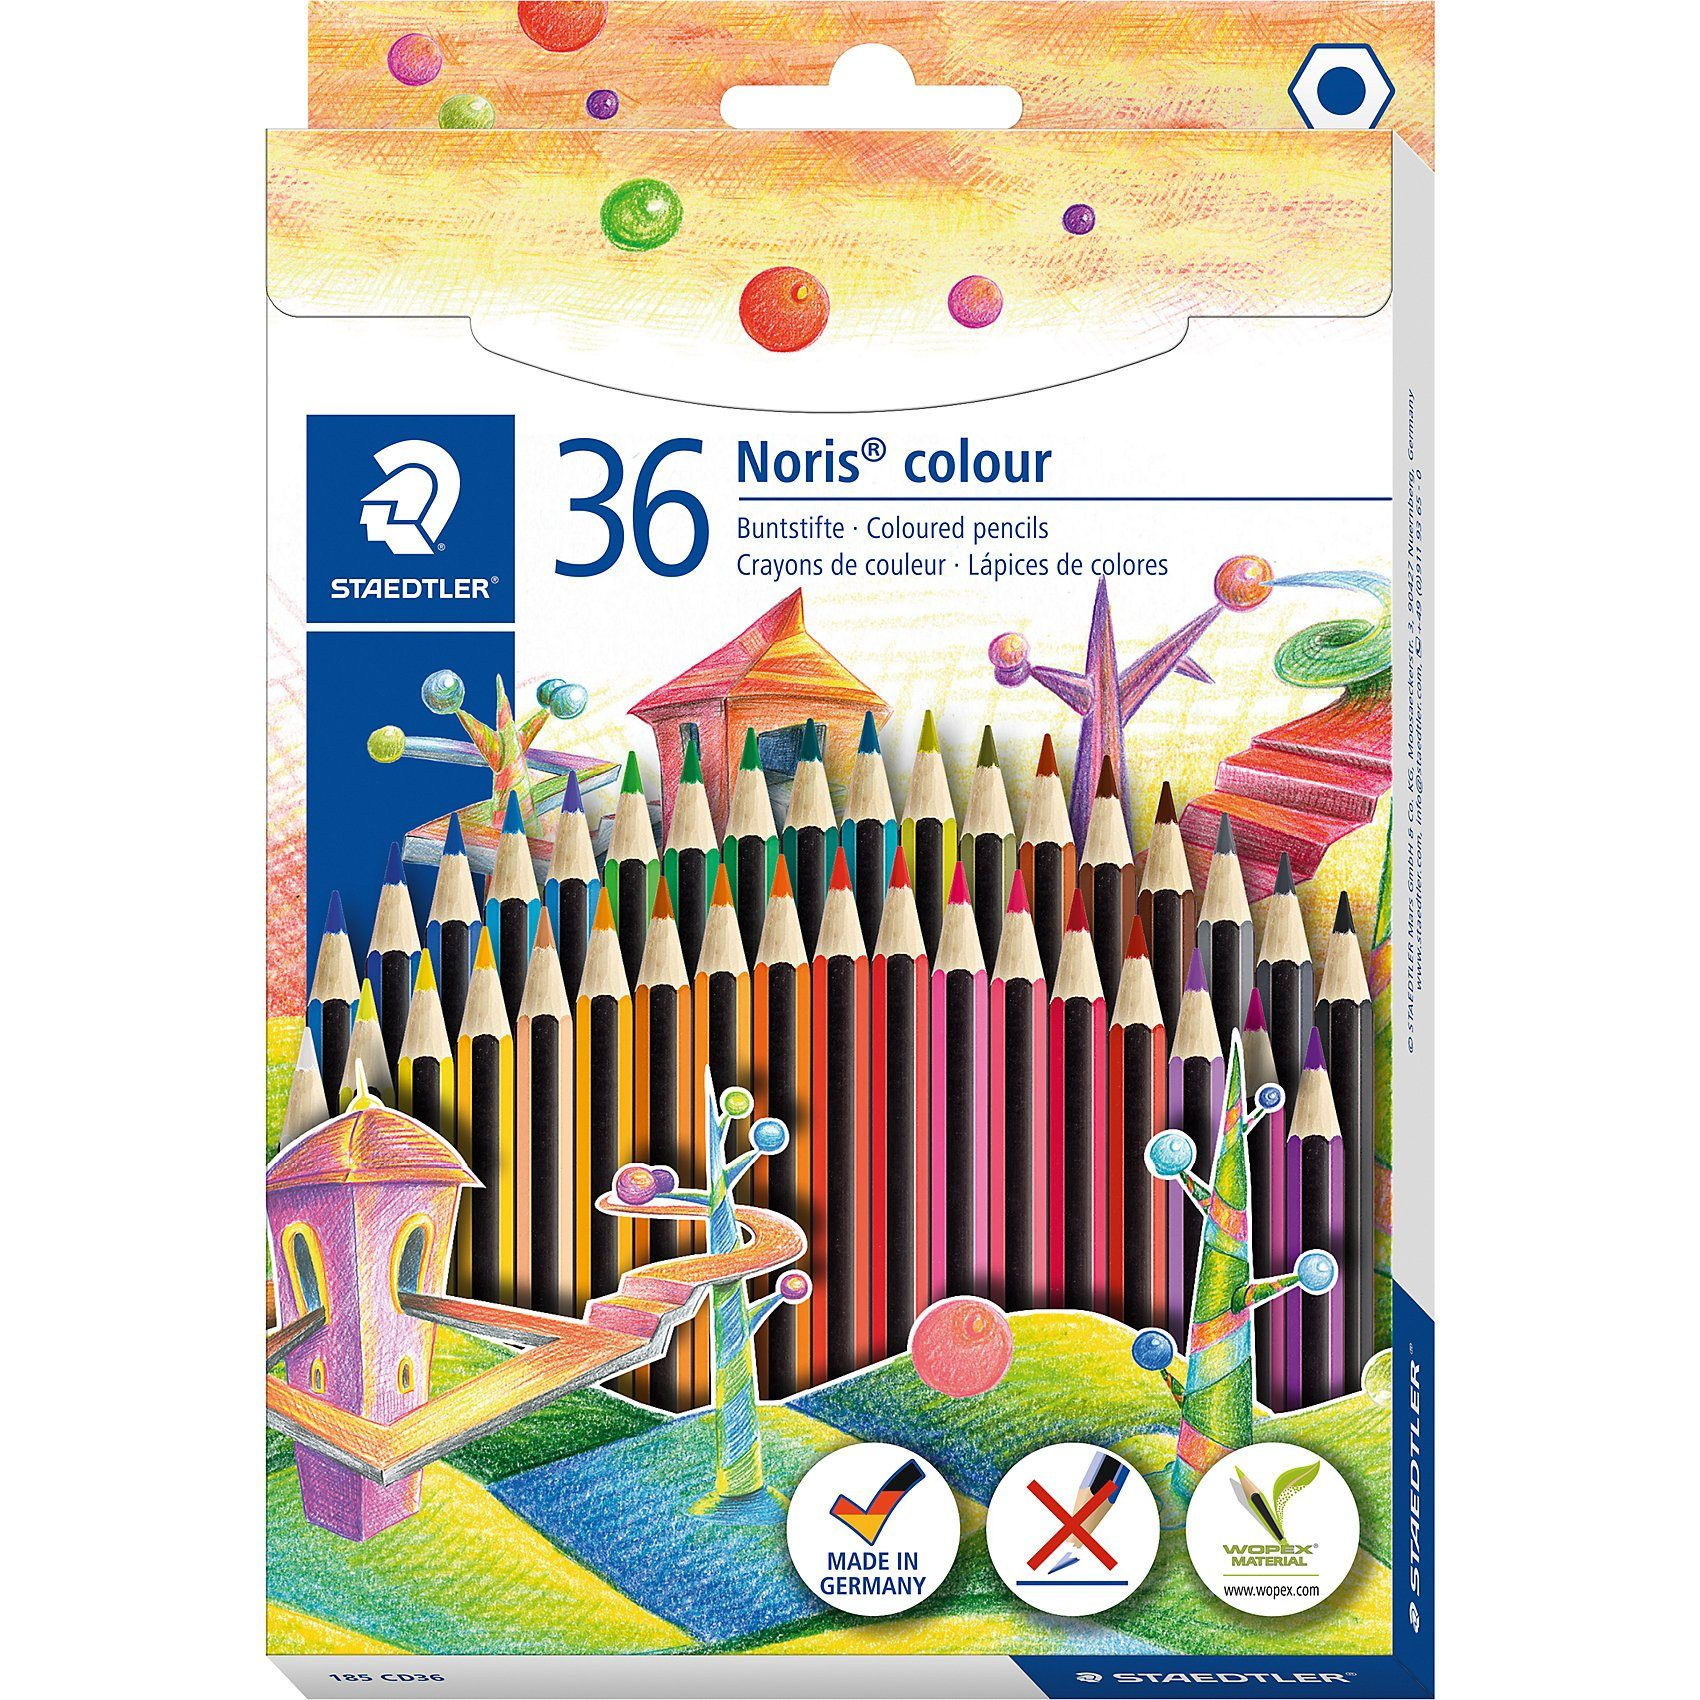 STAEDTLER Noris colour Buntstifte, 36 Farben